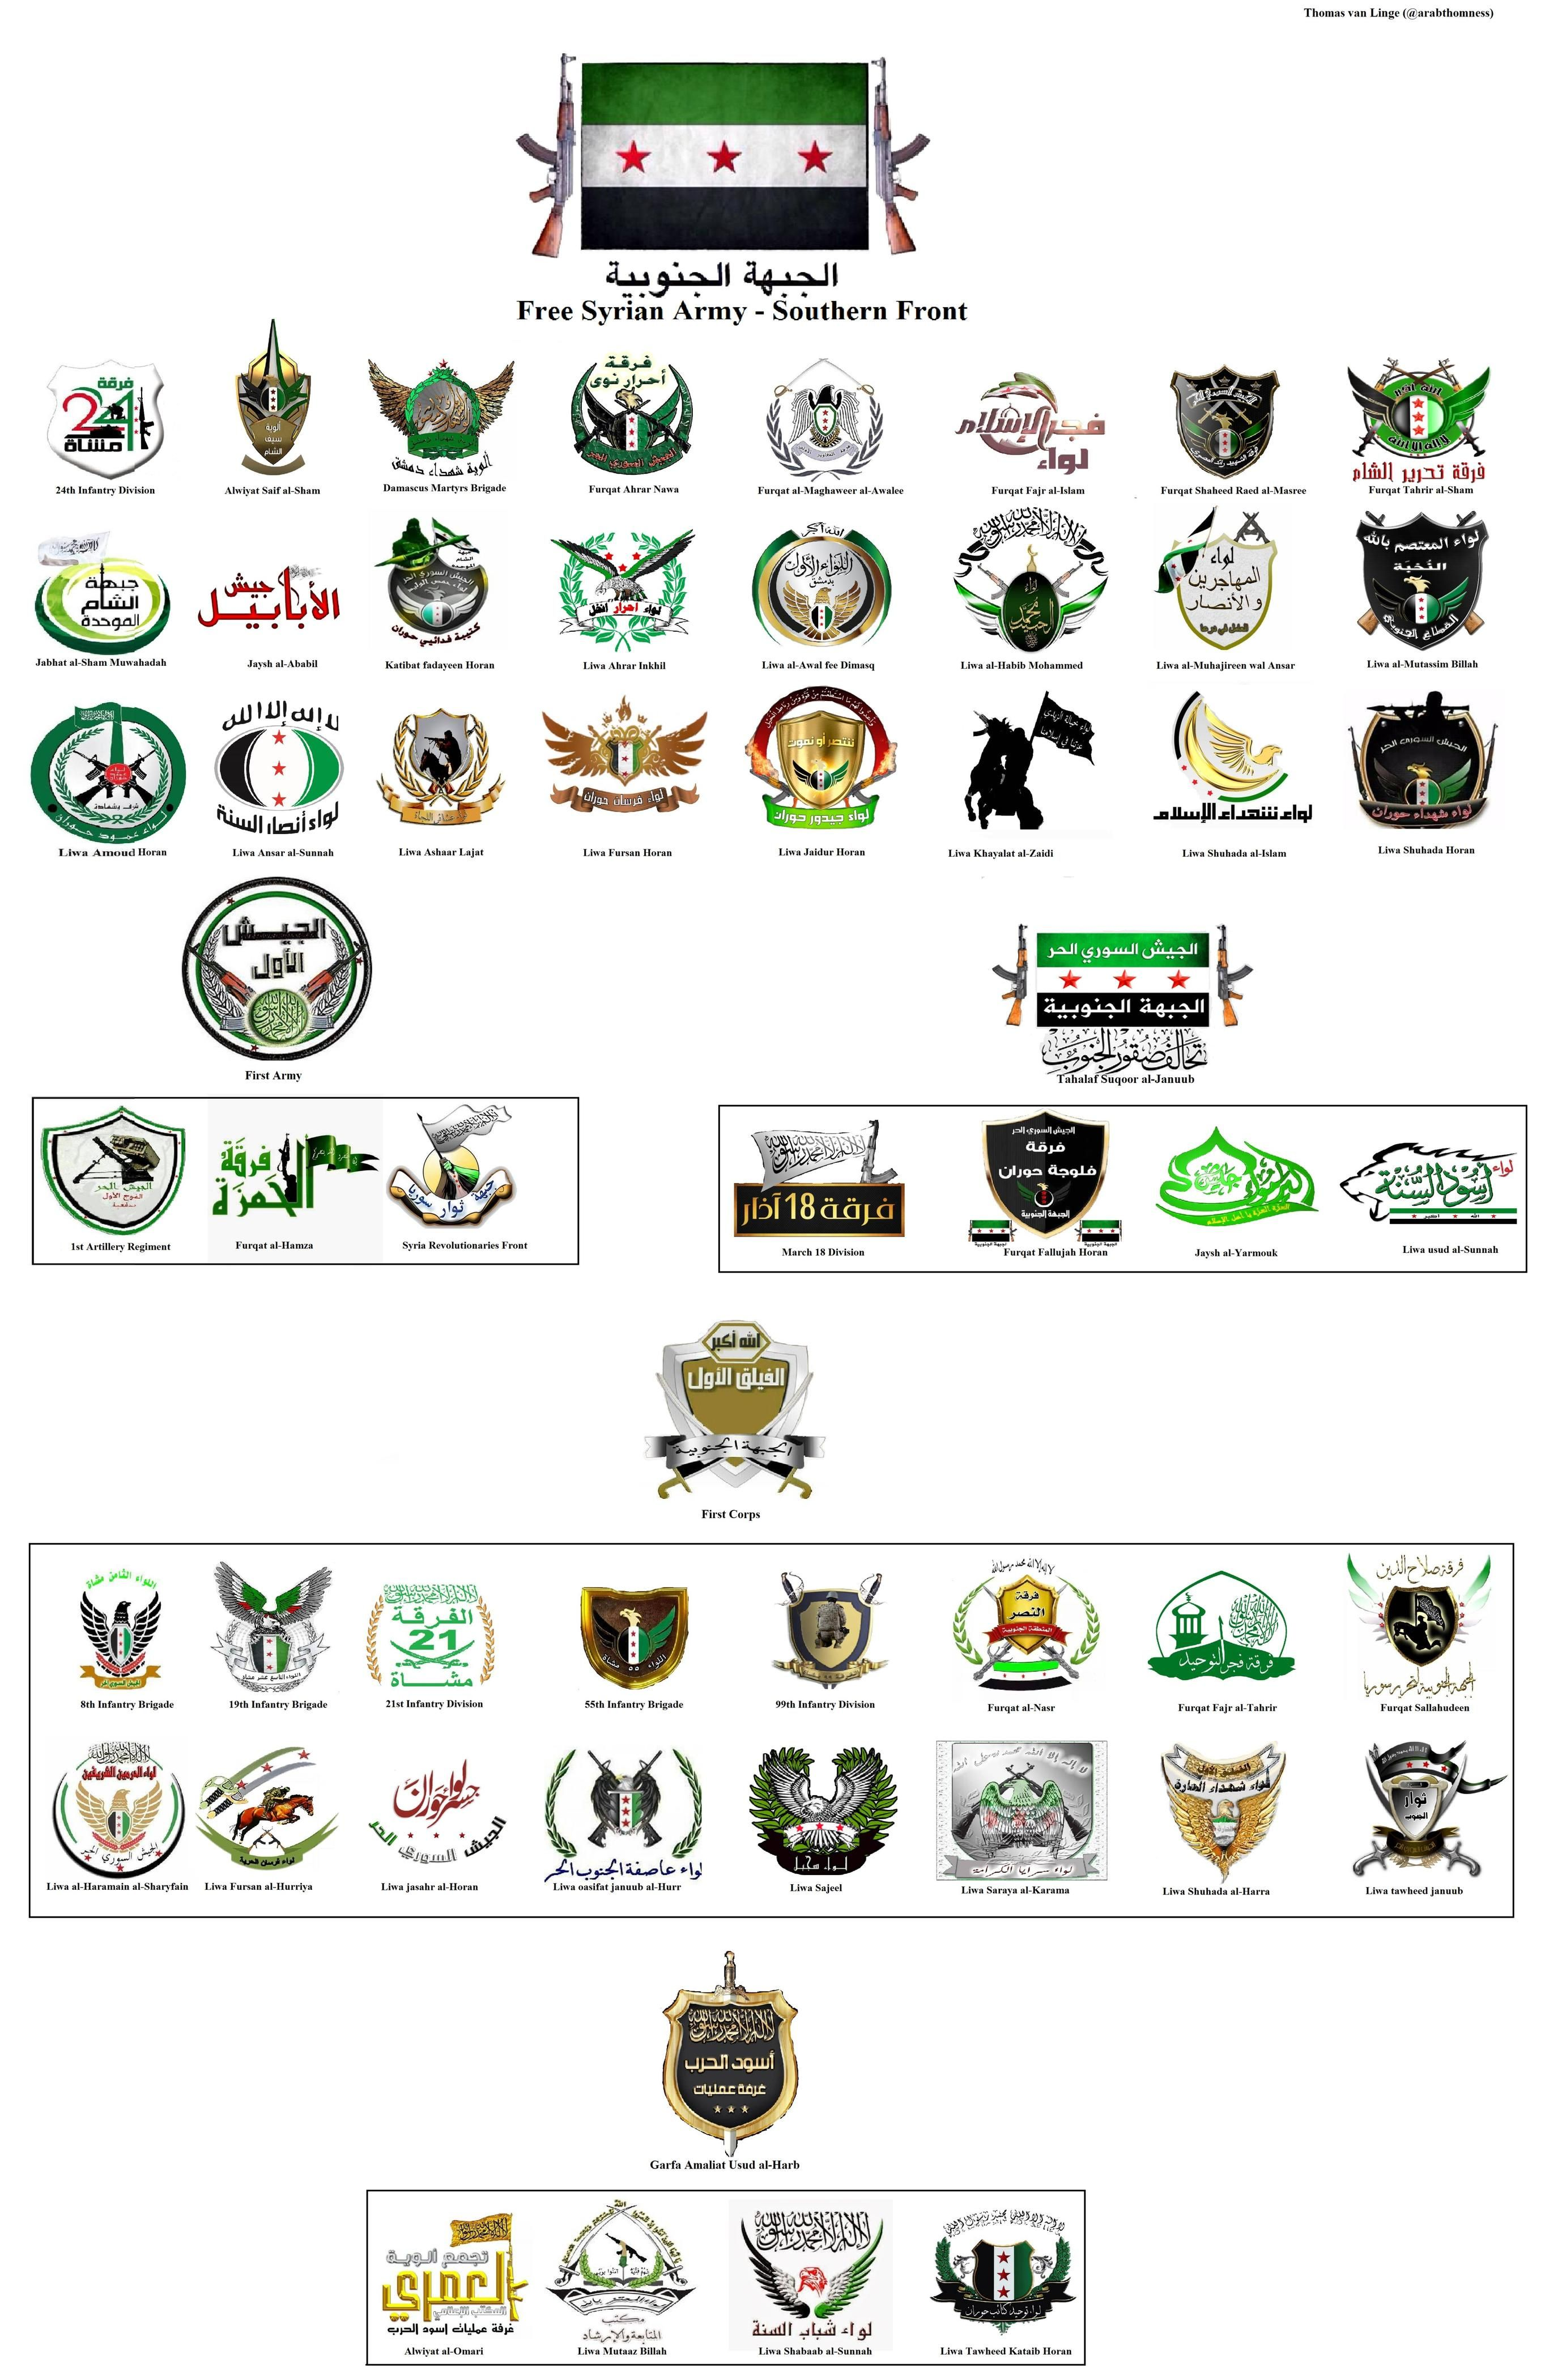 INFOGRAPHIC: the Free Syrian Army (#FSA)- Southern Front, all major factions